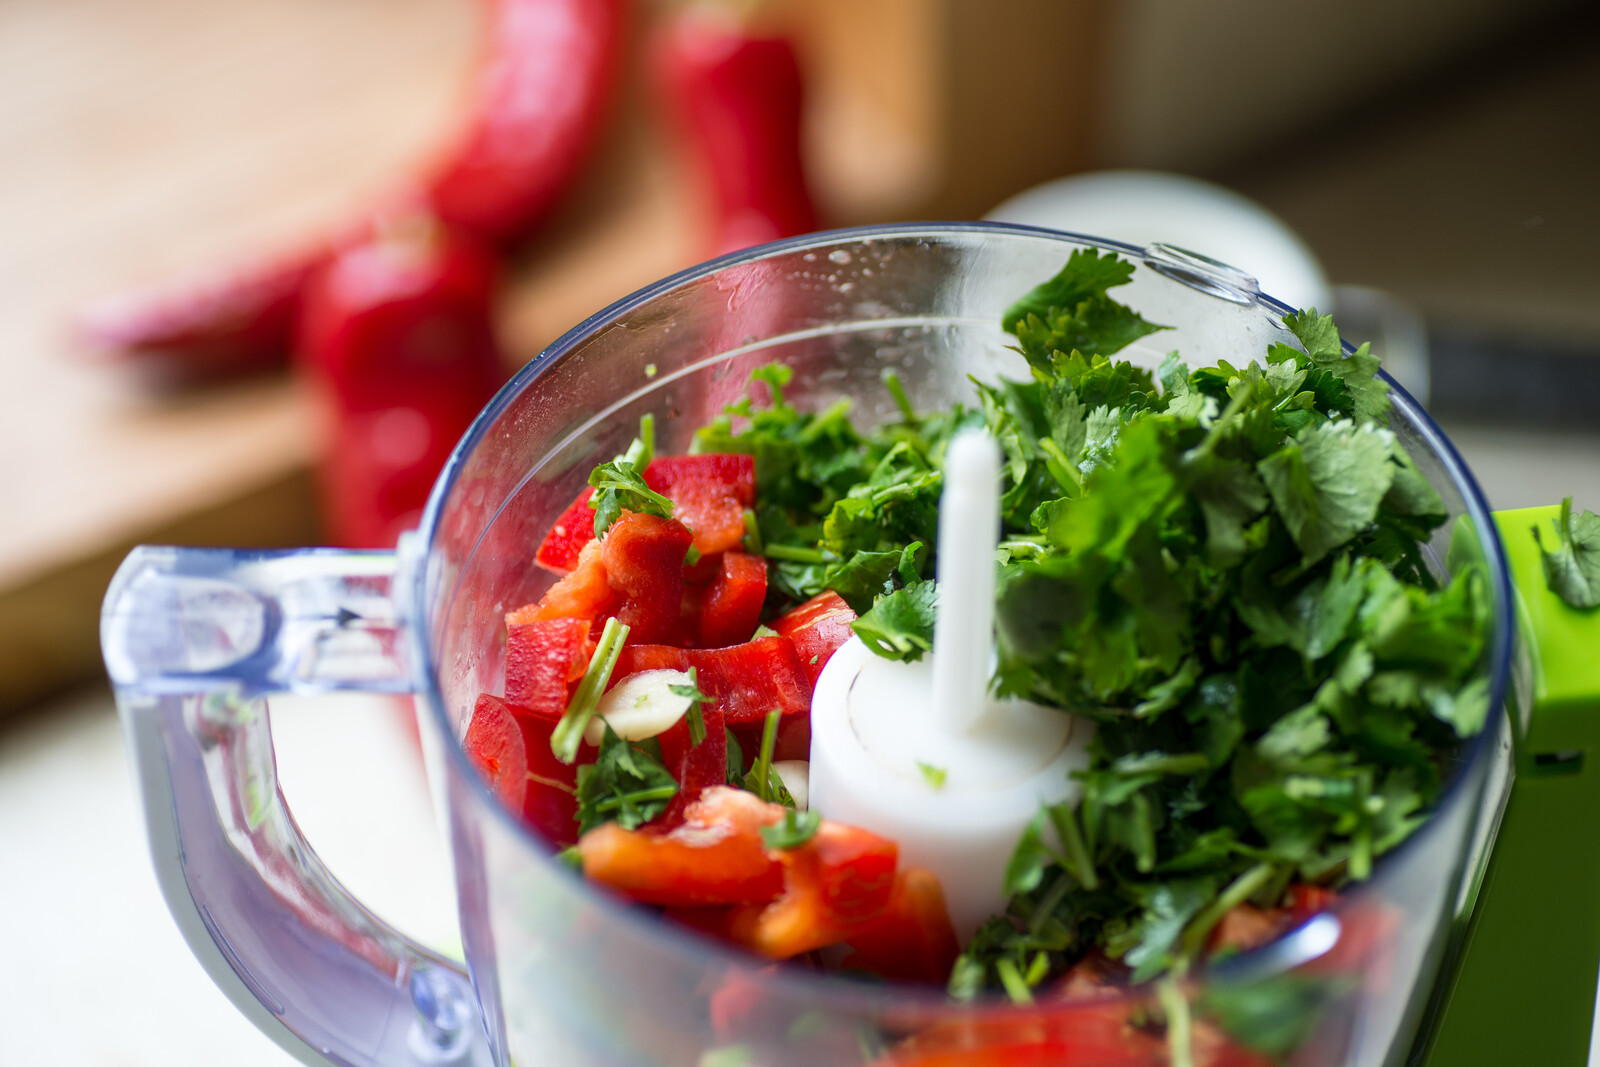 Blender with fresh bell pepper and cilantro on a kitchen table ready for juicing